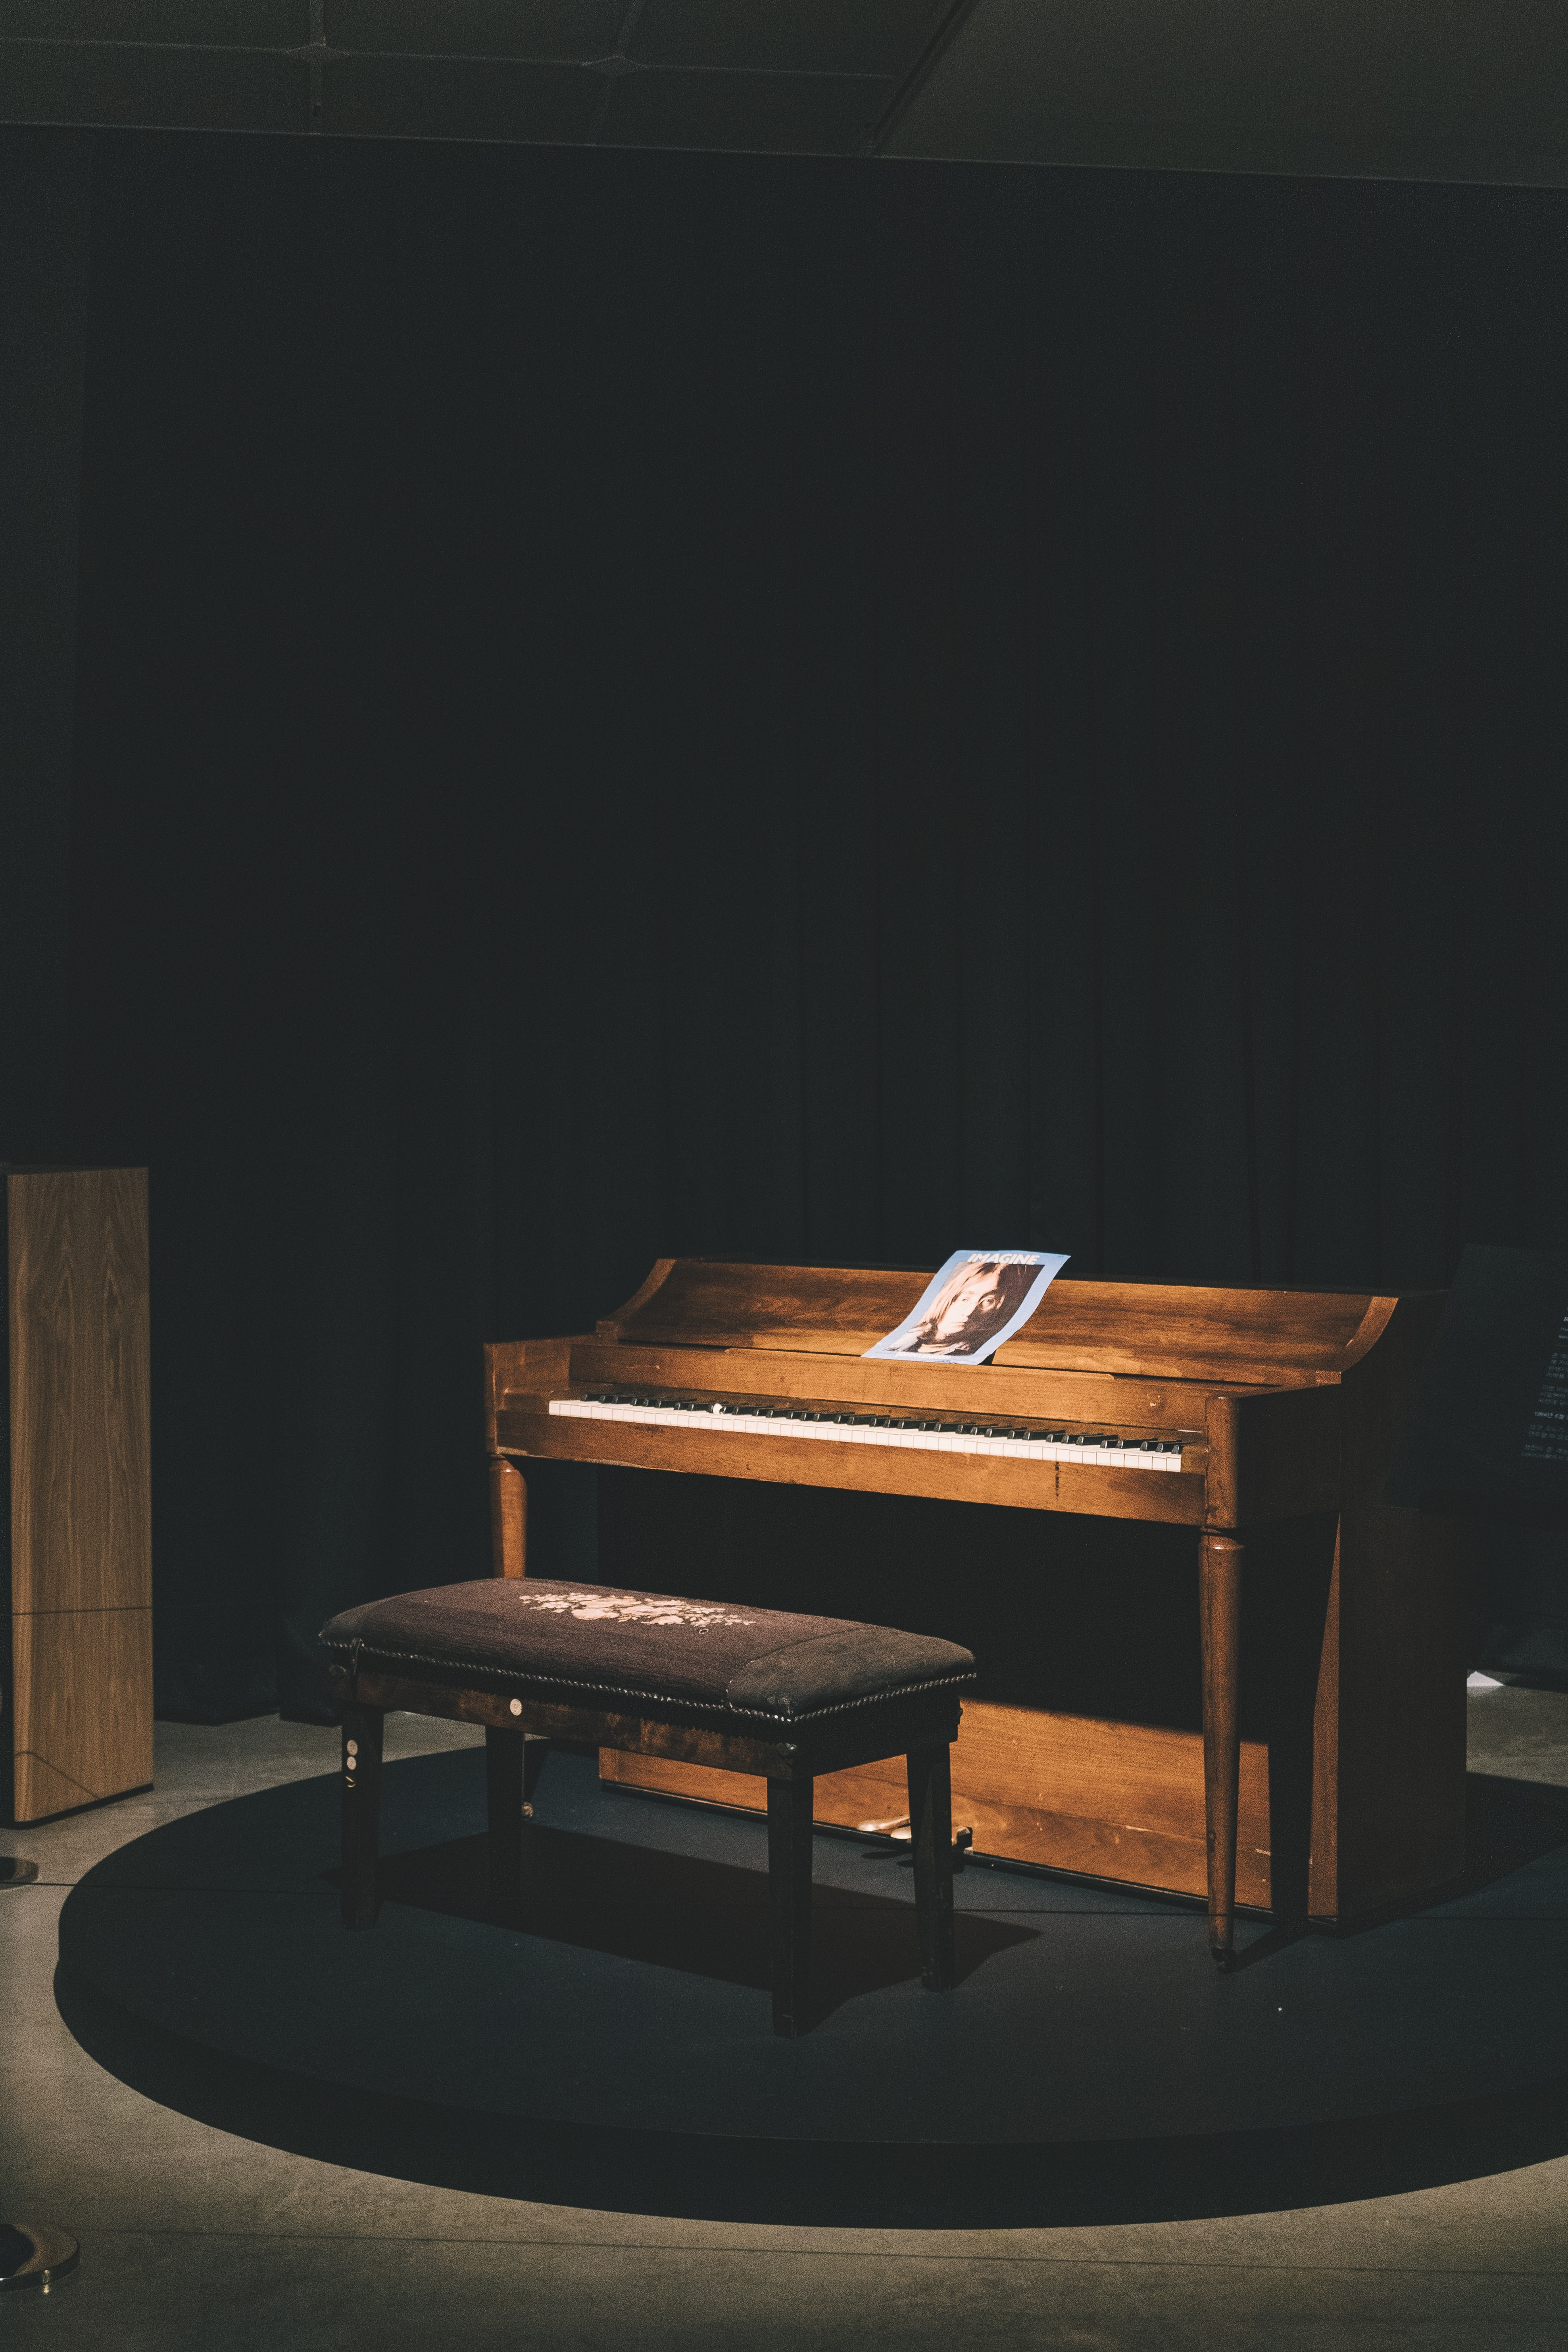 brown wooden upright piano with ottoman bench and light turned-on